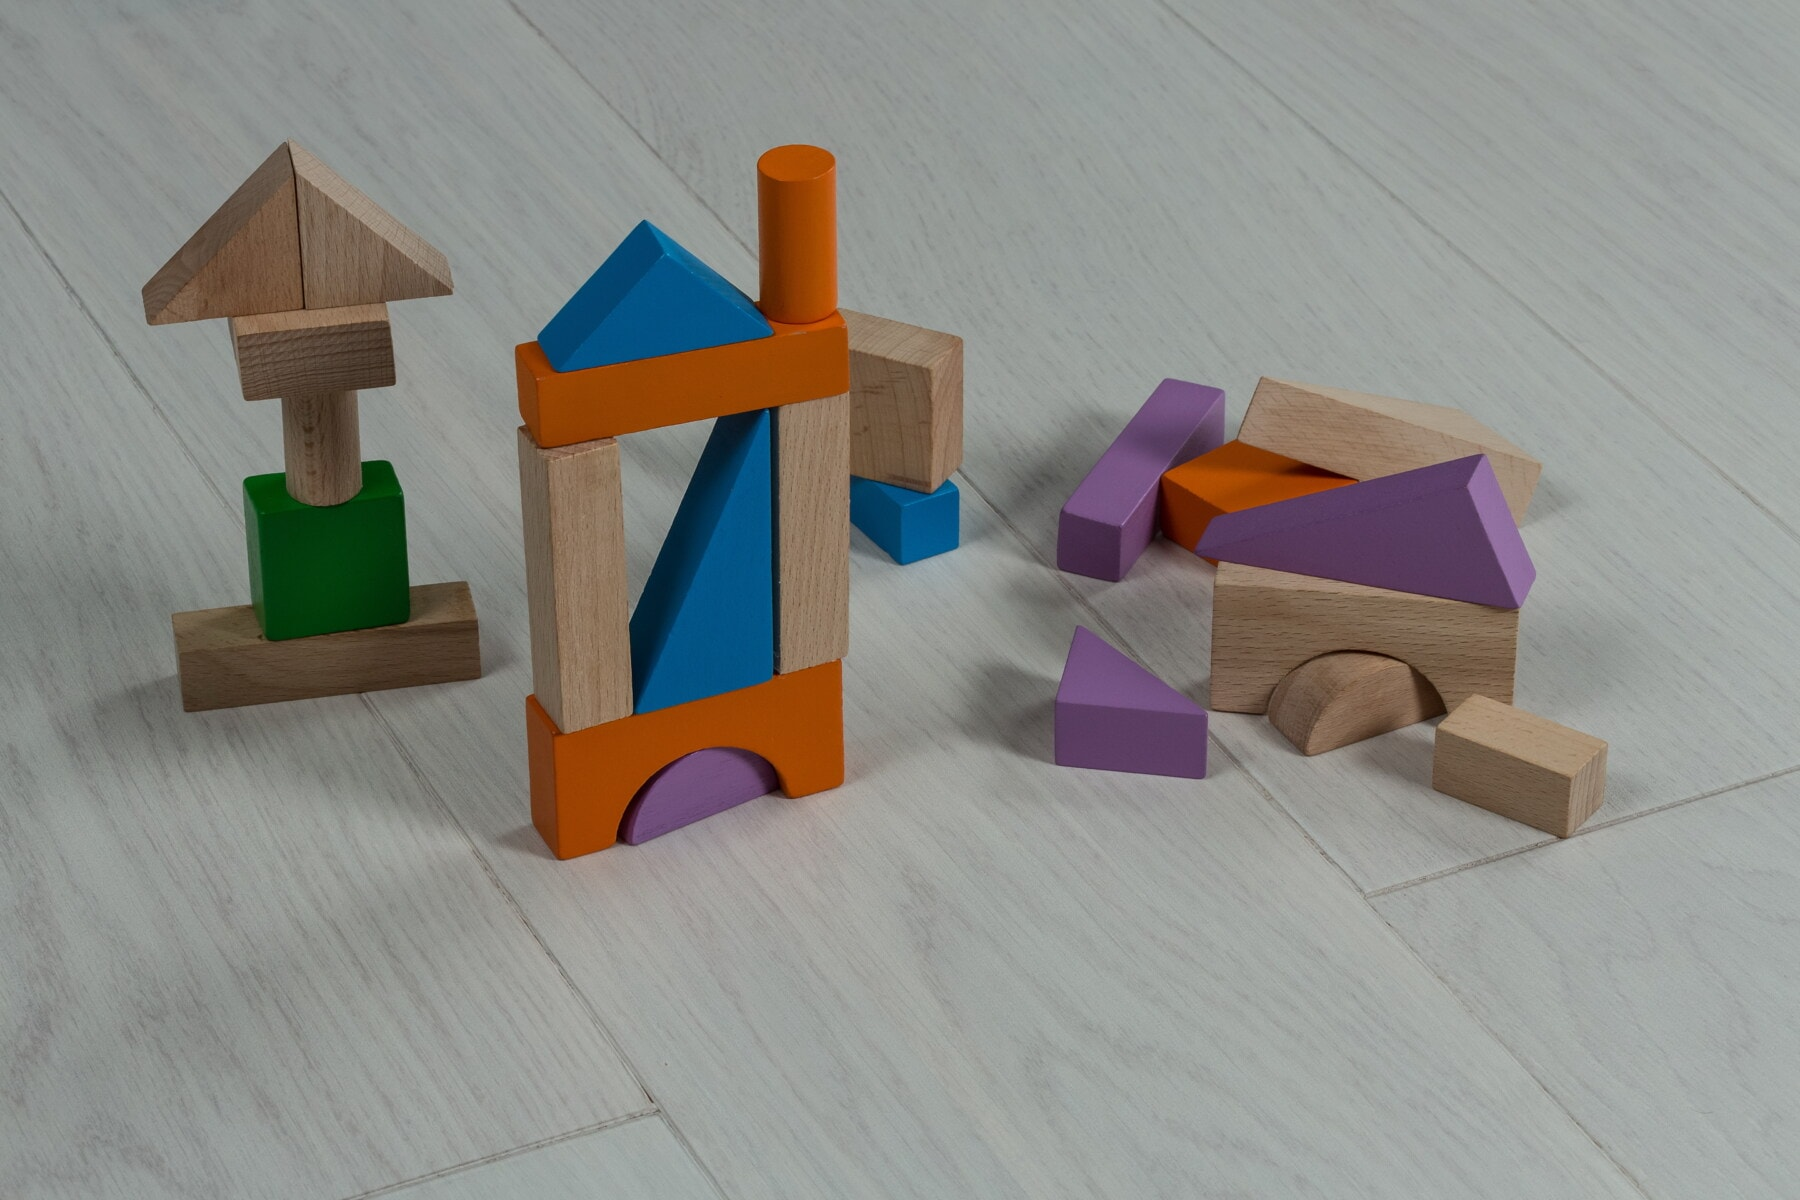 toys, shape, miniature, wooden, creativity, triangle, cube, box, toy, wood